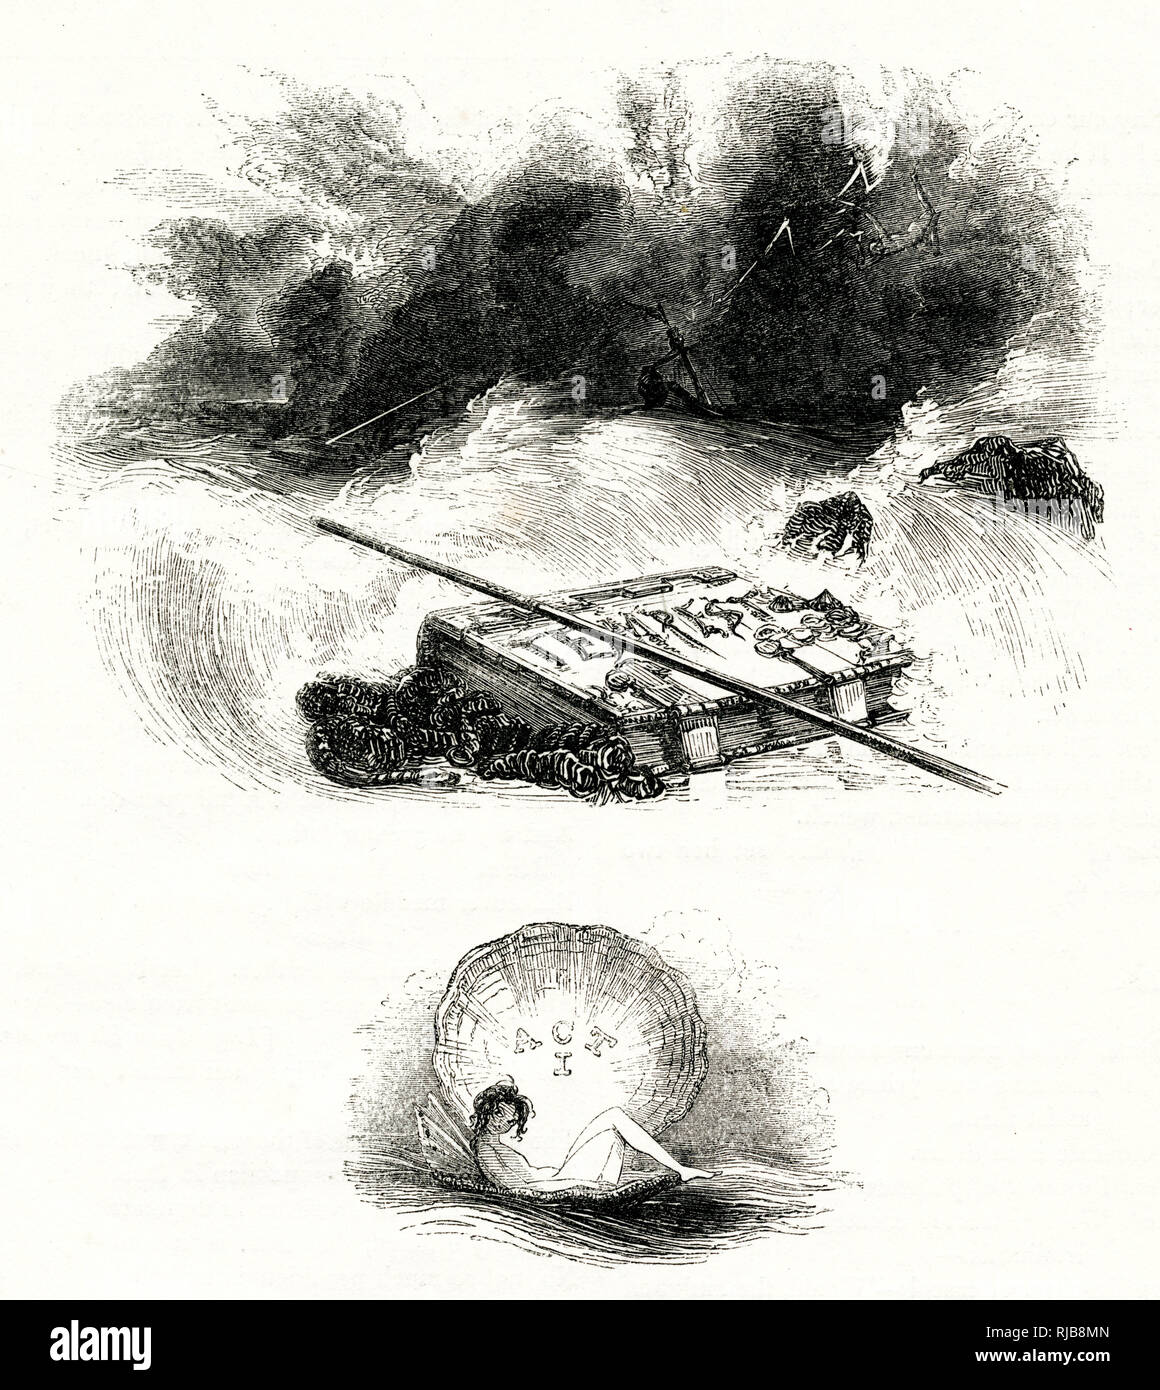 Illustration by Kenny Meadows to The Tempest, by William Shakespeare. The storm at sea, watched by Ariel. Stock Photo